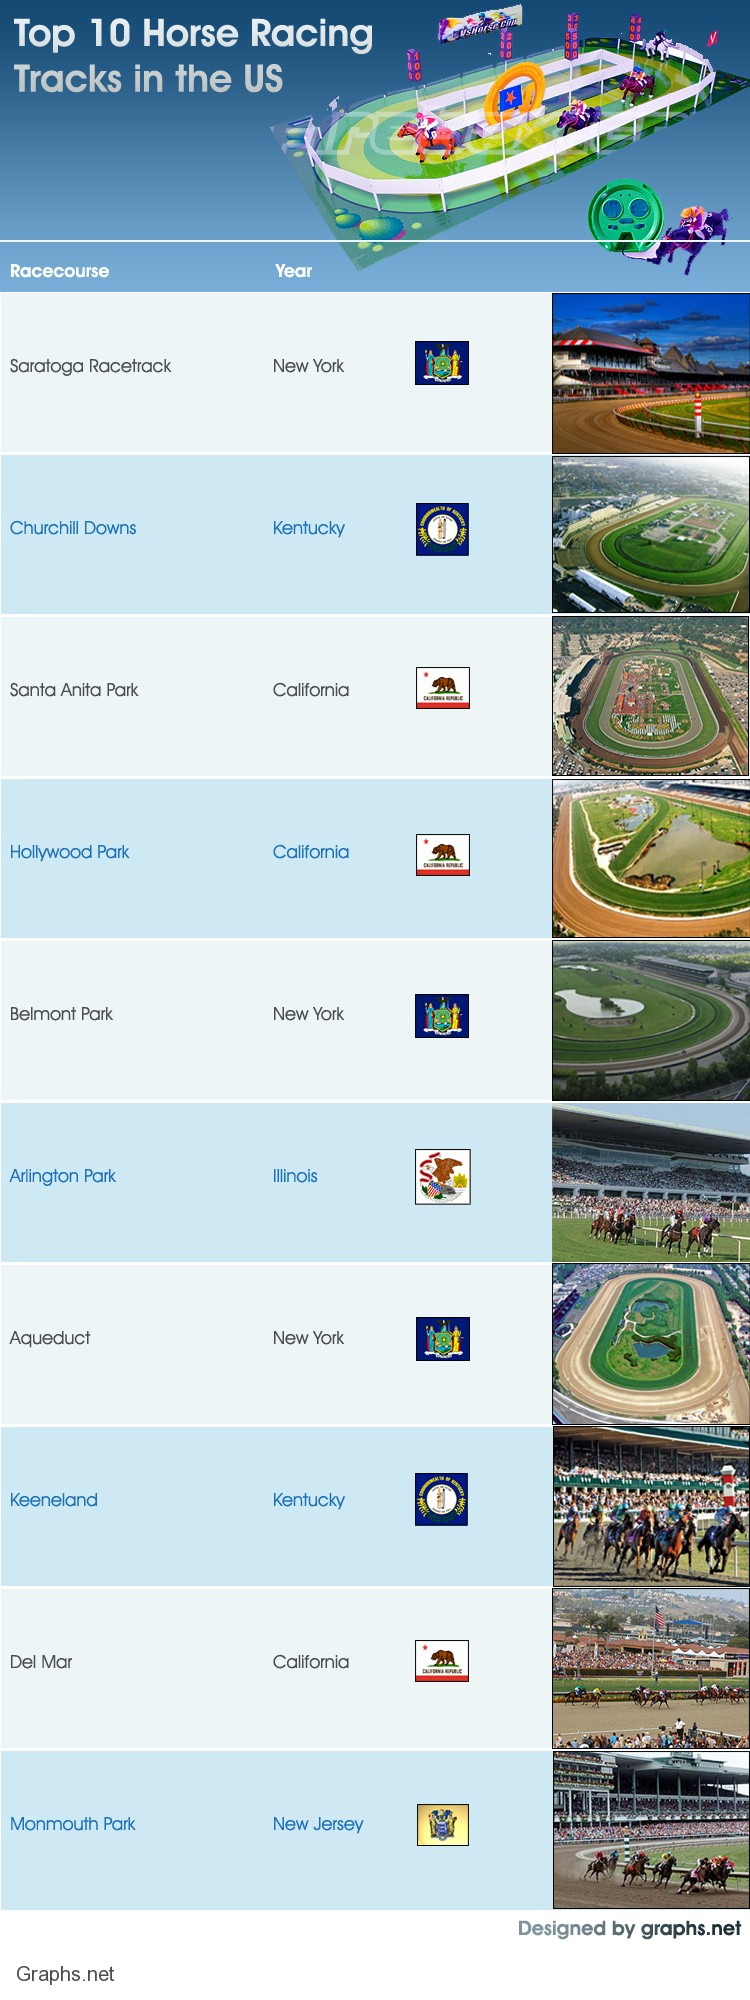 Top 10 Horse Racing Tracks in the US